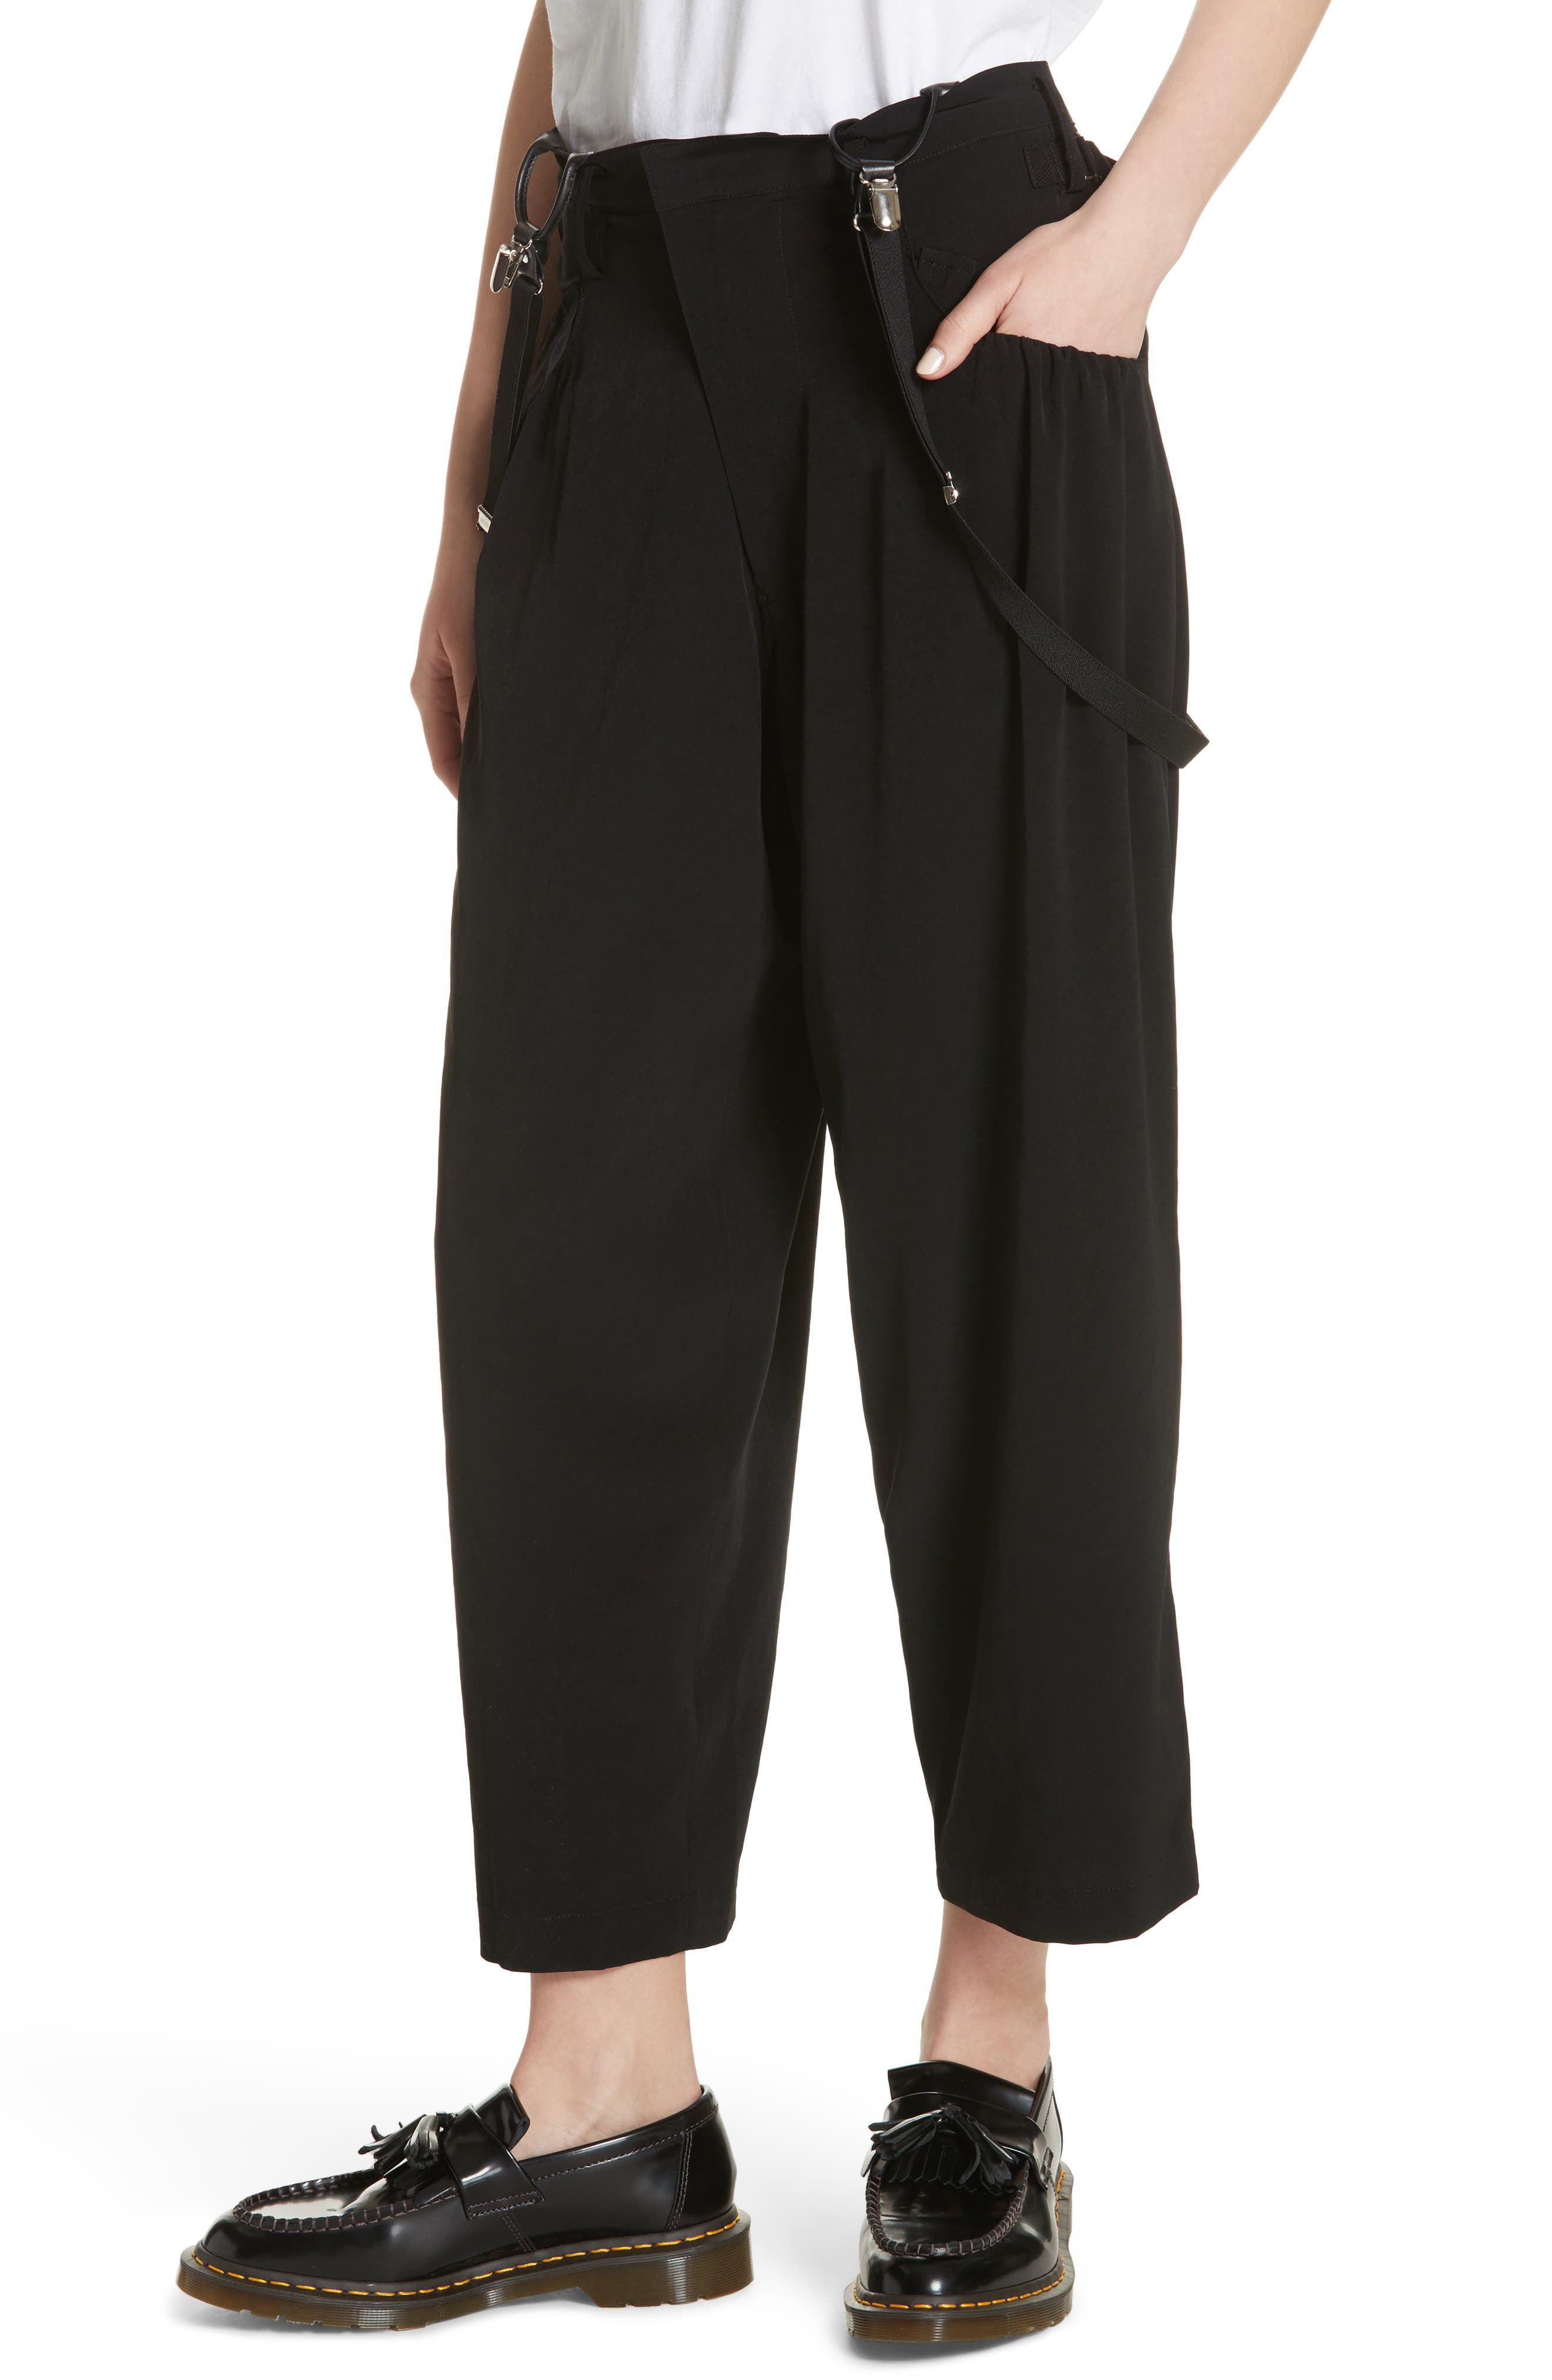 Pants with Suspenders,                             Alternate thumbnail 4, color,                             Black